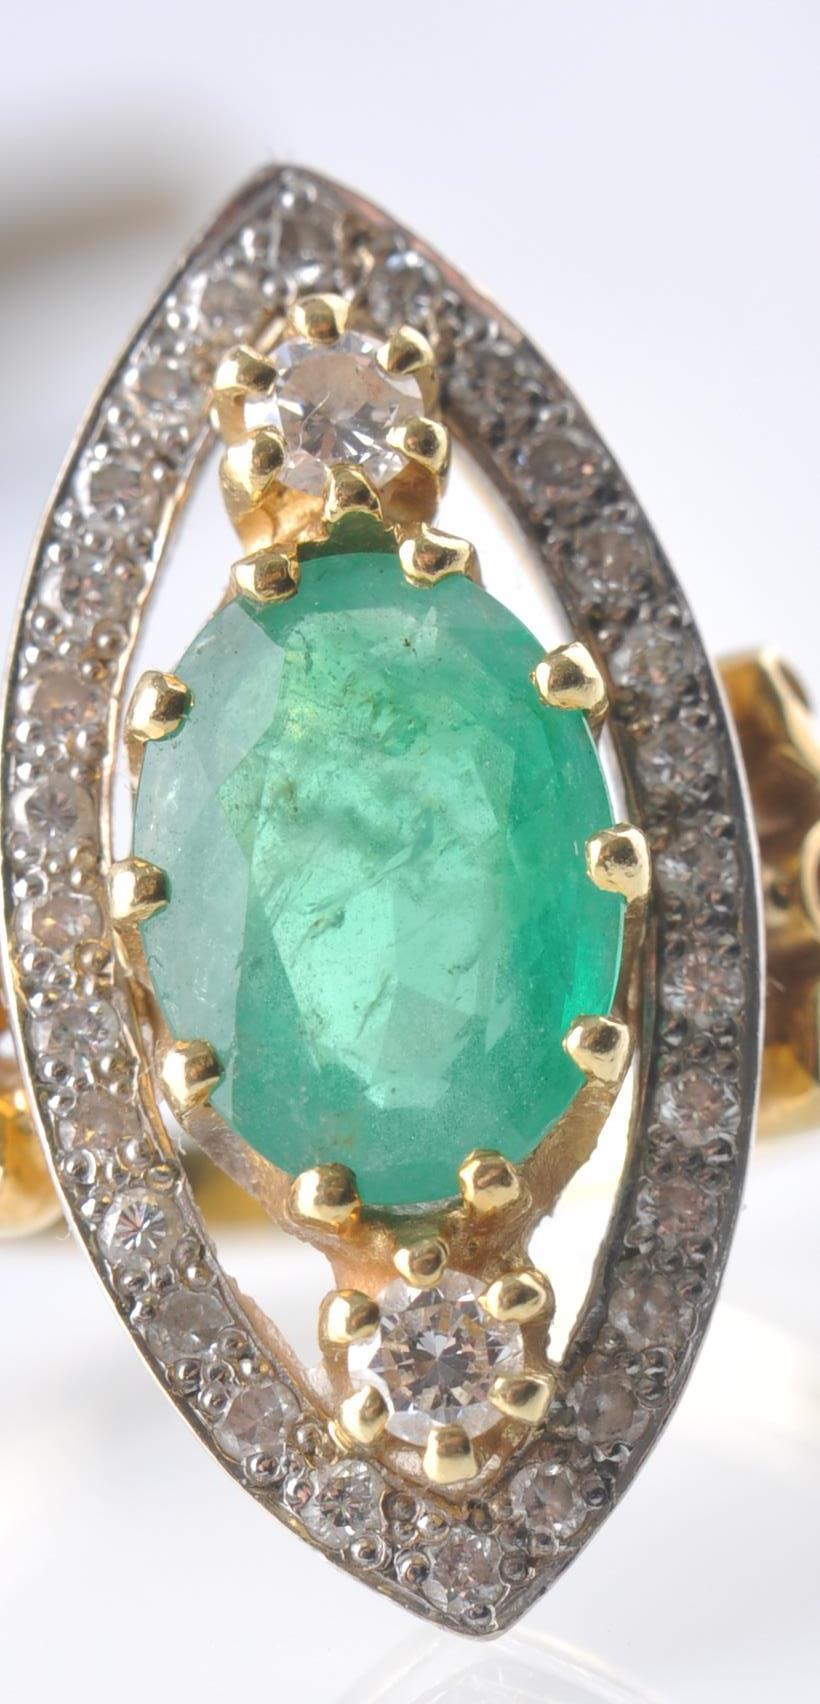 A HALLMARKED 18CT GOD EMERALD AND DIAMOND RING - Image 6 of 11